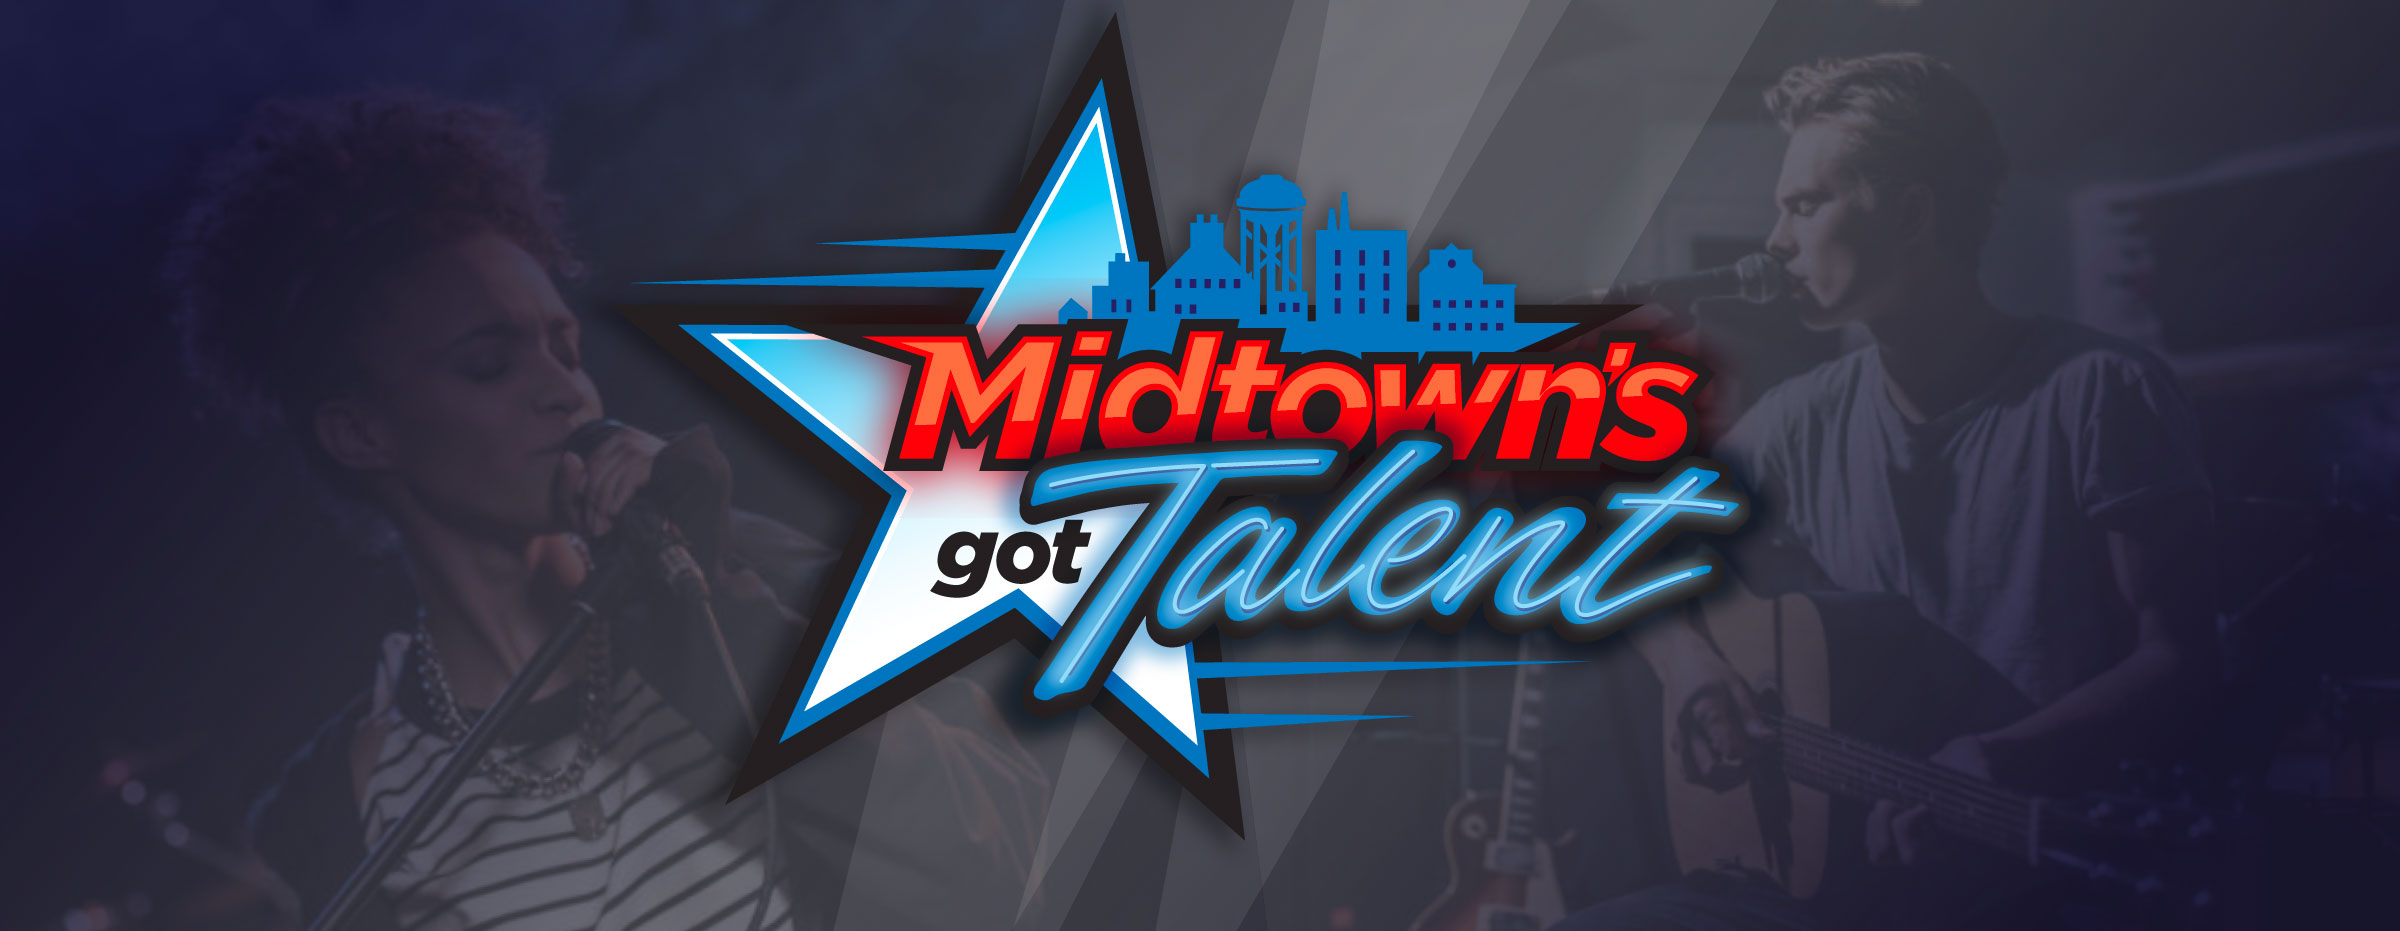 Midtown's Got Talent